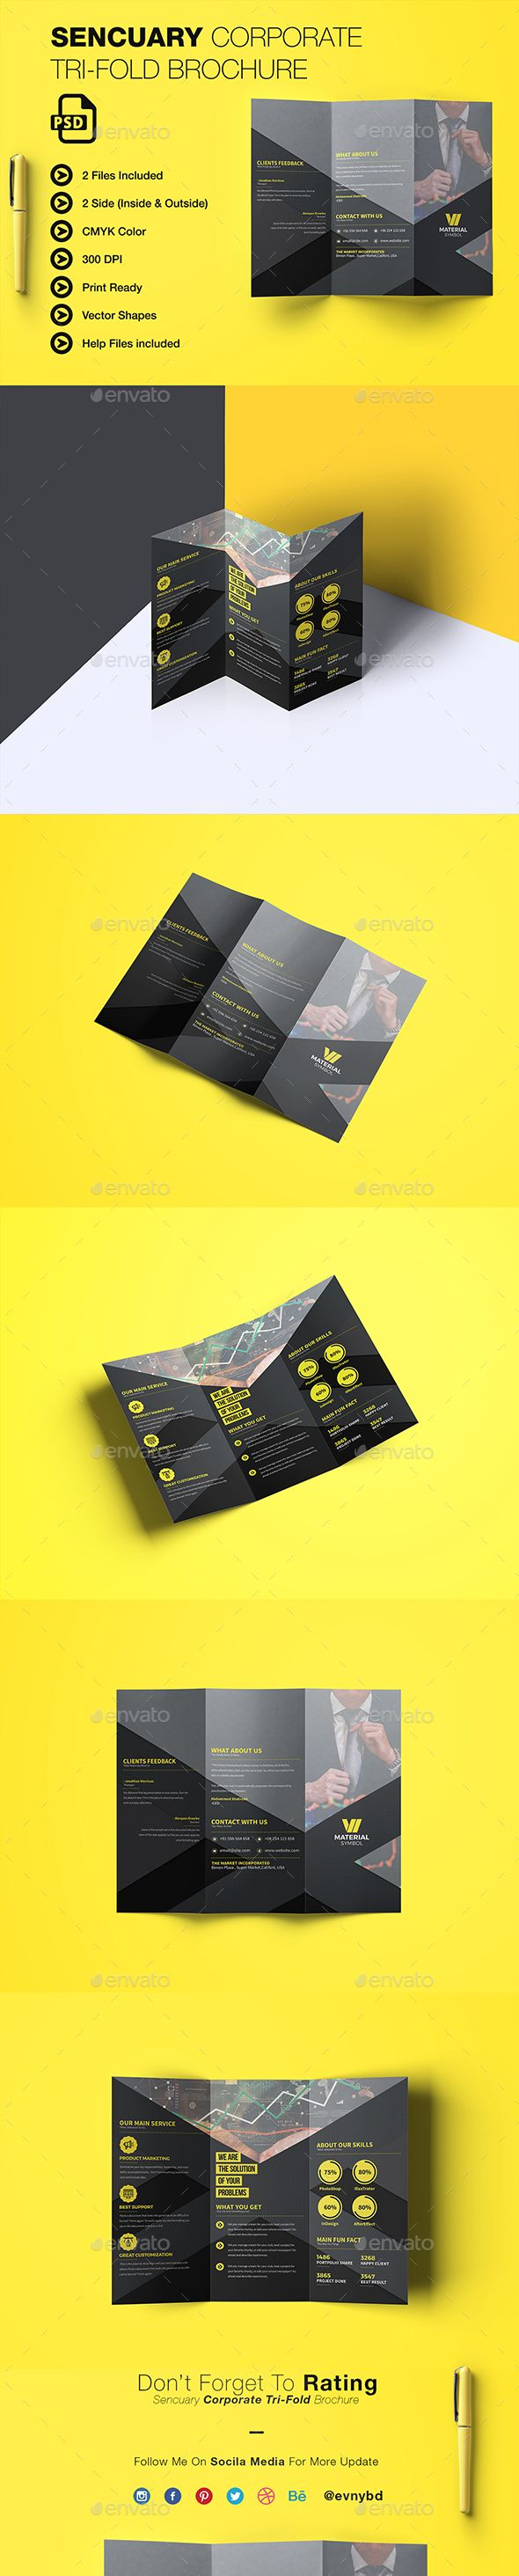 Sencuary Coporate Tri-fold Brochure   #a4, #a4 brochure, #abstract, #abstract brochure, #advert, #advertising, #advertising brochure, #black brochure, #brochure, #brochure design, #business, #clean, #clean brochure, #company, #company profile, #corporate, #creative, #design, #material, #modern, #multipurpose, #print ready, #professional, #promotion, #simple, #template, #tri-fold, #tri-fold brochure, #unique, #yellow